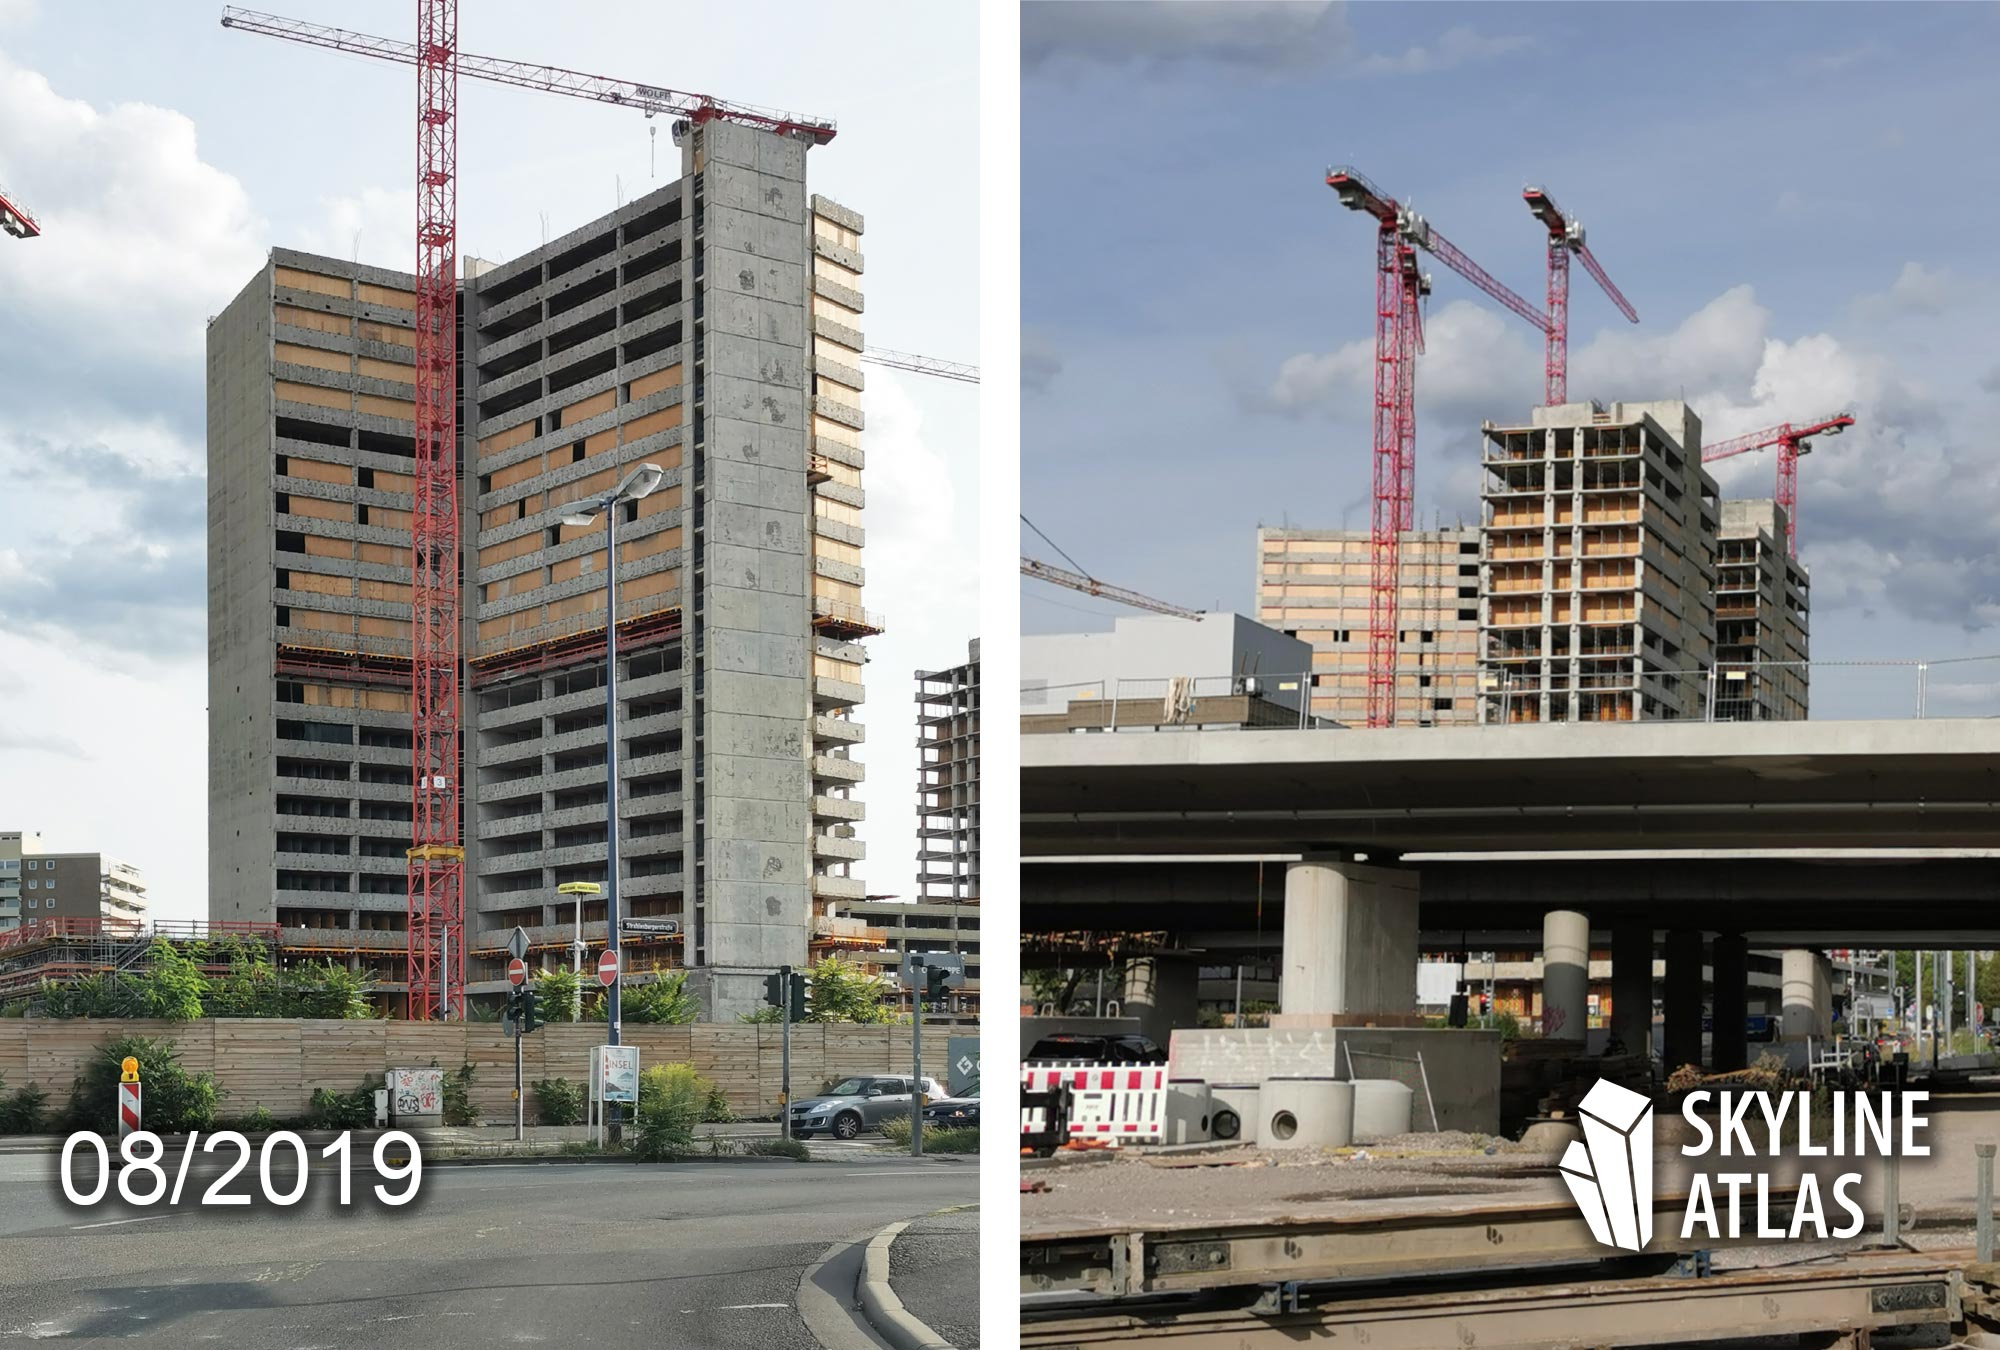 New Frankfurt Towers in Offenbach - Apartments to rent - Kaiserlei area - concrete highrise under construction in August 2019 by CG Gruppe